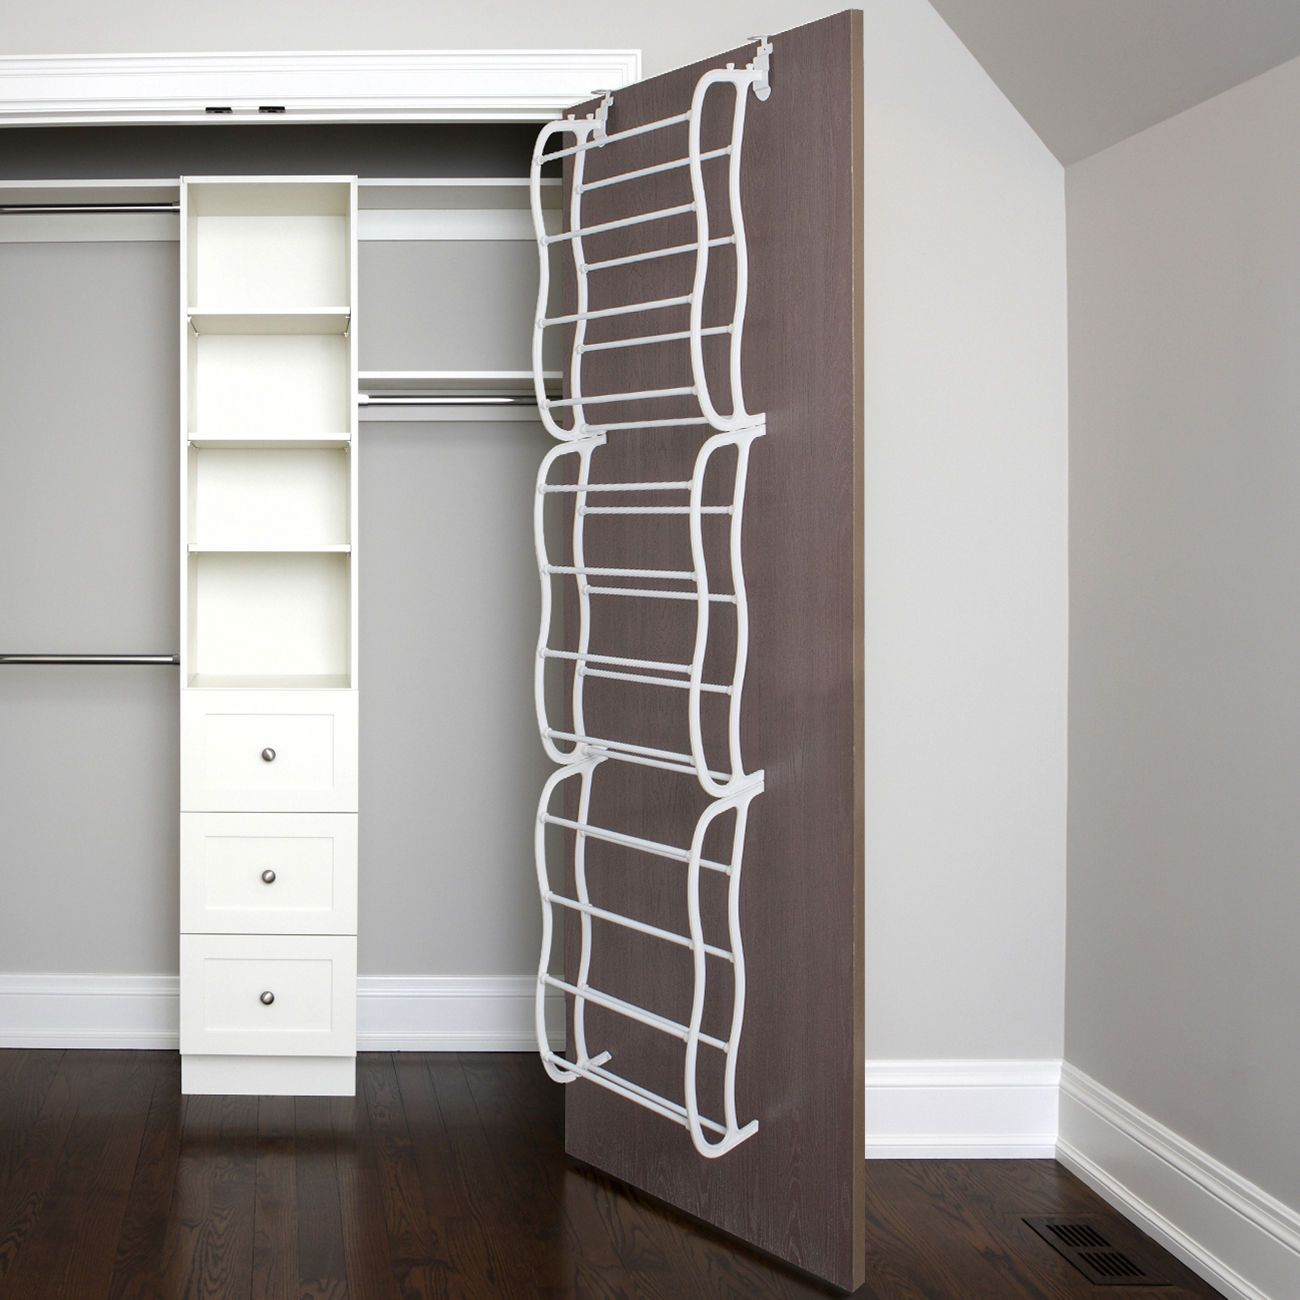 The Oxgord Over Door Shoe Rack Makes It Easy To Free Your Closet And Storage